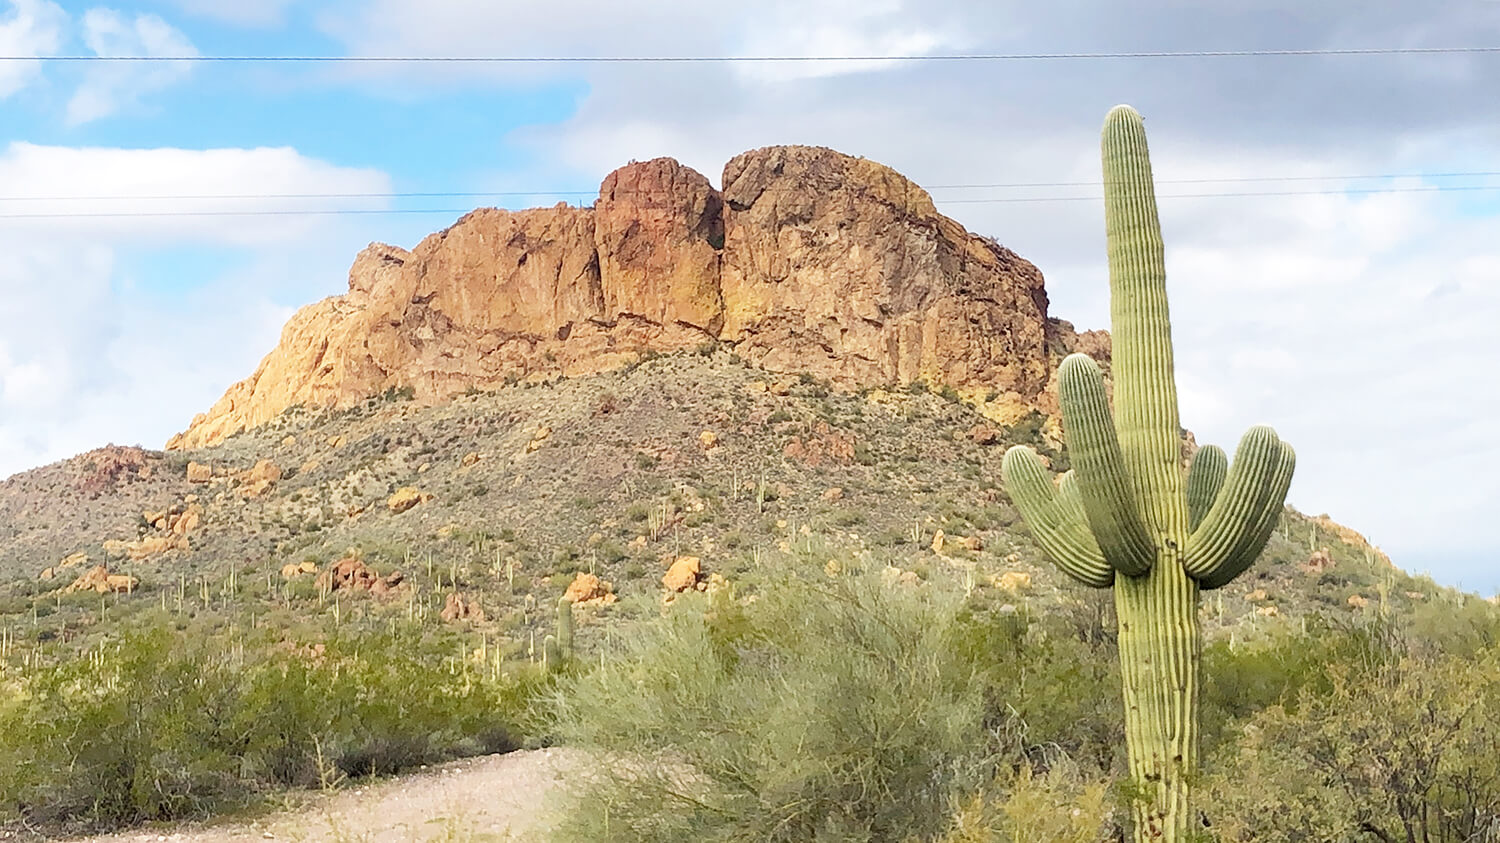 Visit Mesa Arizona - Travel Guide - Things To Do in Mesa Gilbert Queen Creek Schnepf Farms Superstition Mountains Apache Trail